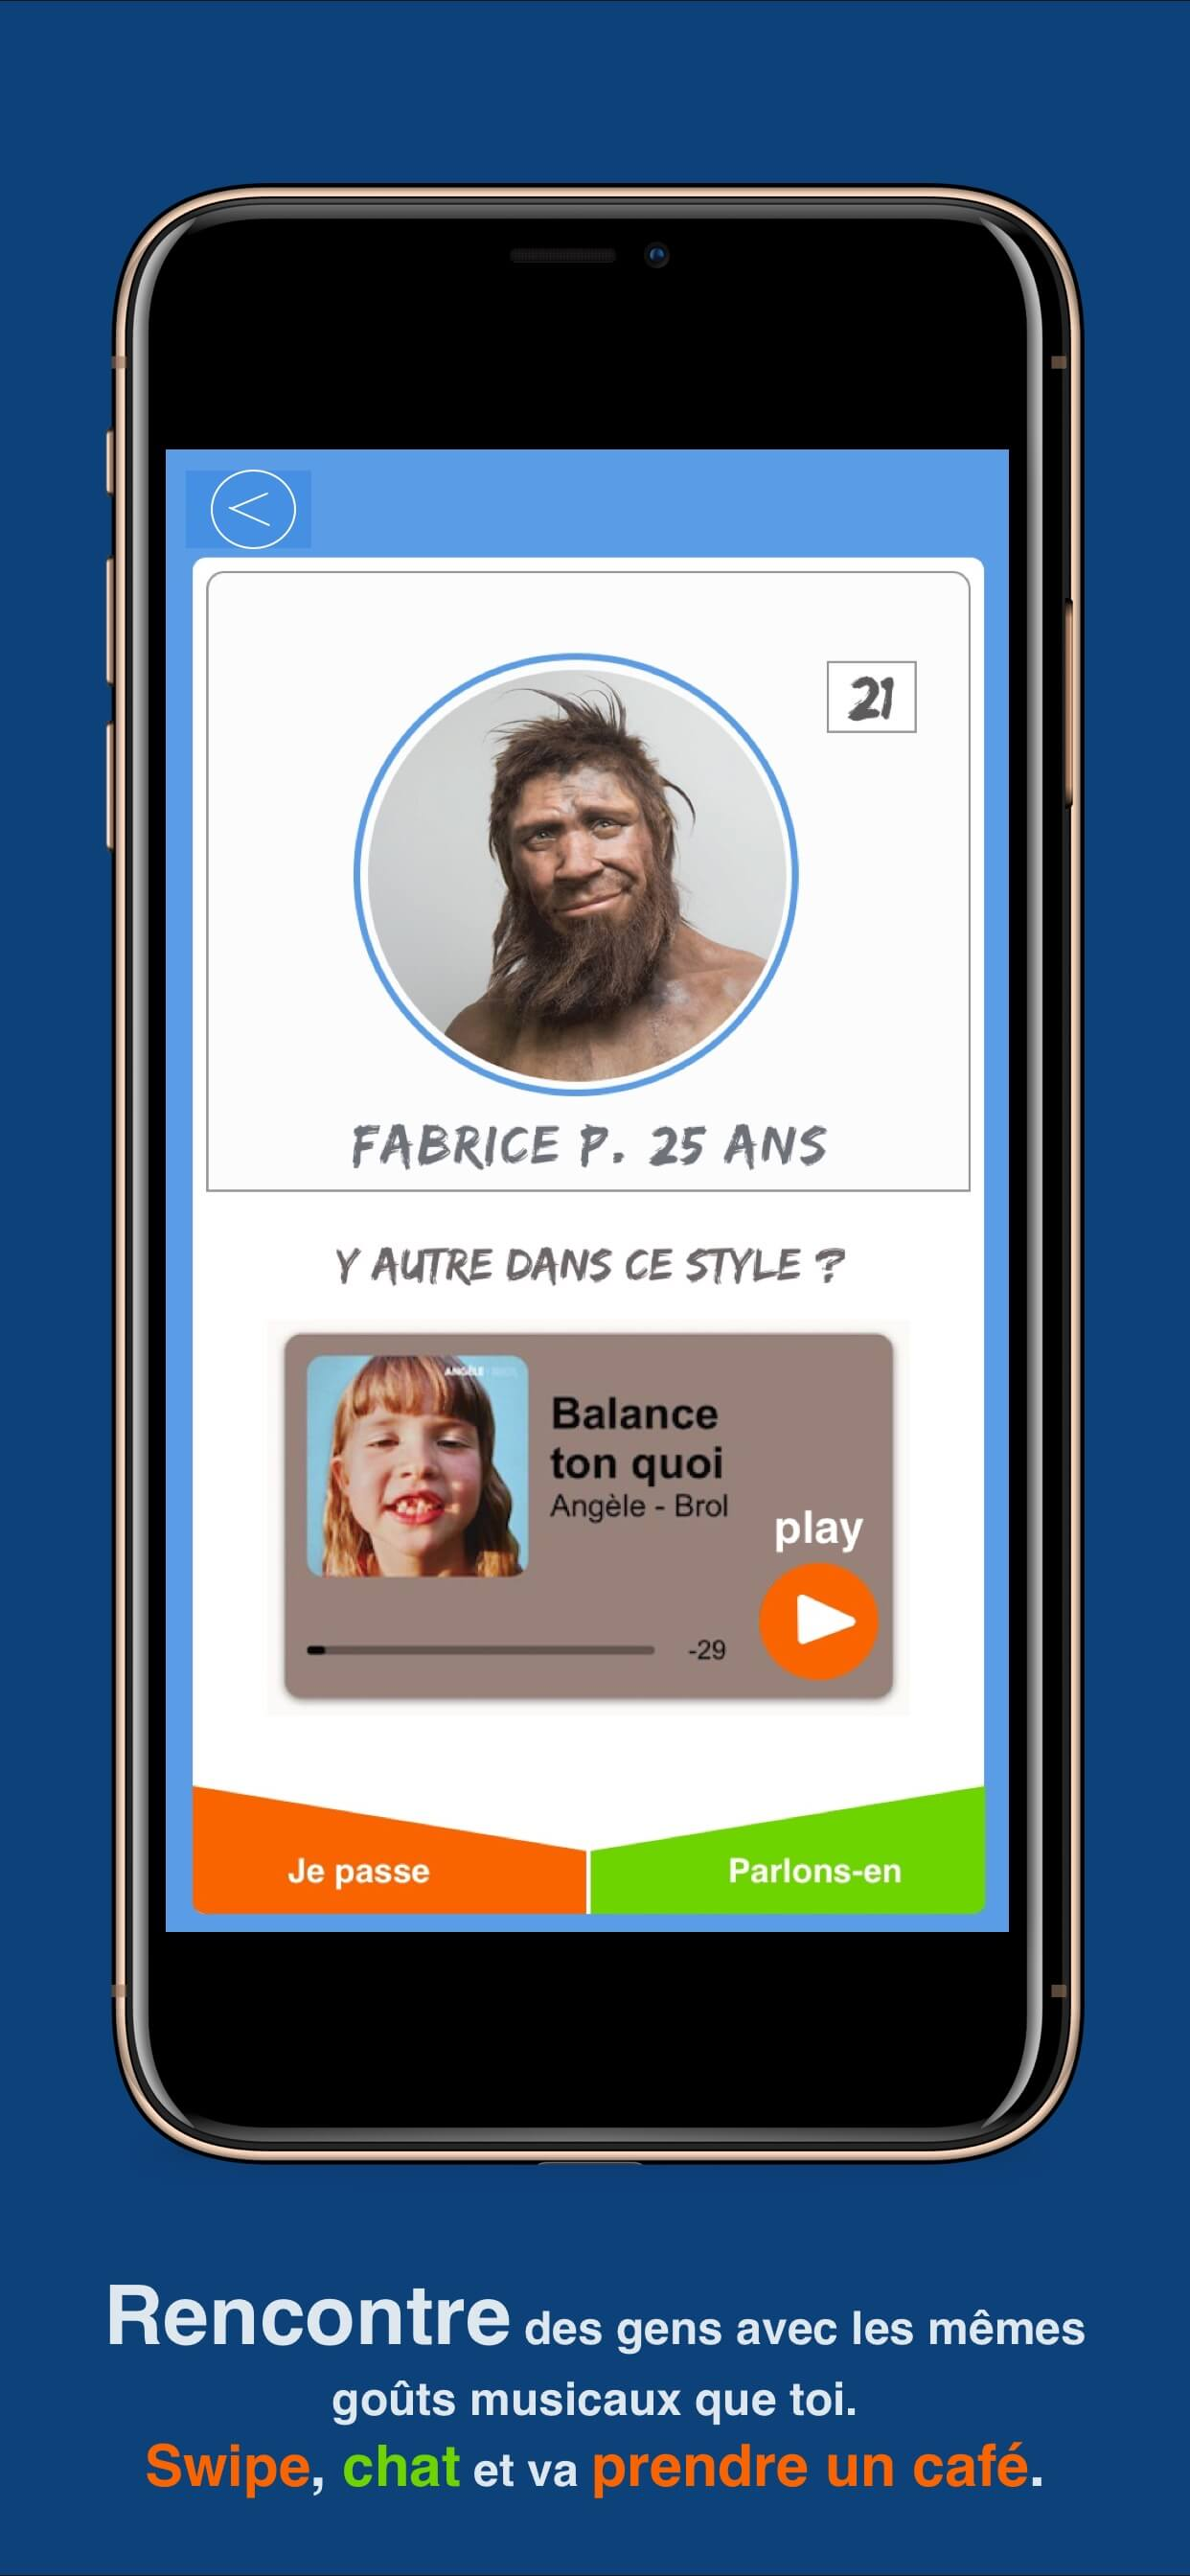 elyot-application-ios-iphone-freelance-bordeaux-jeremy-peltier-3